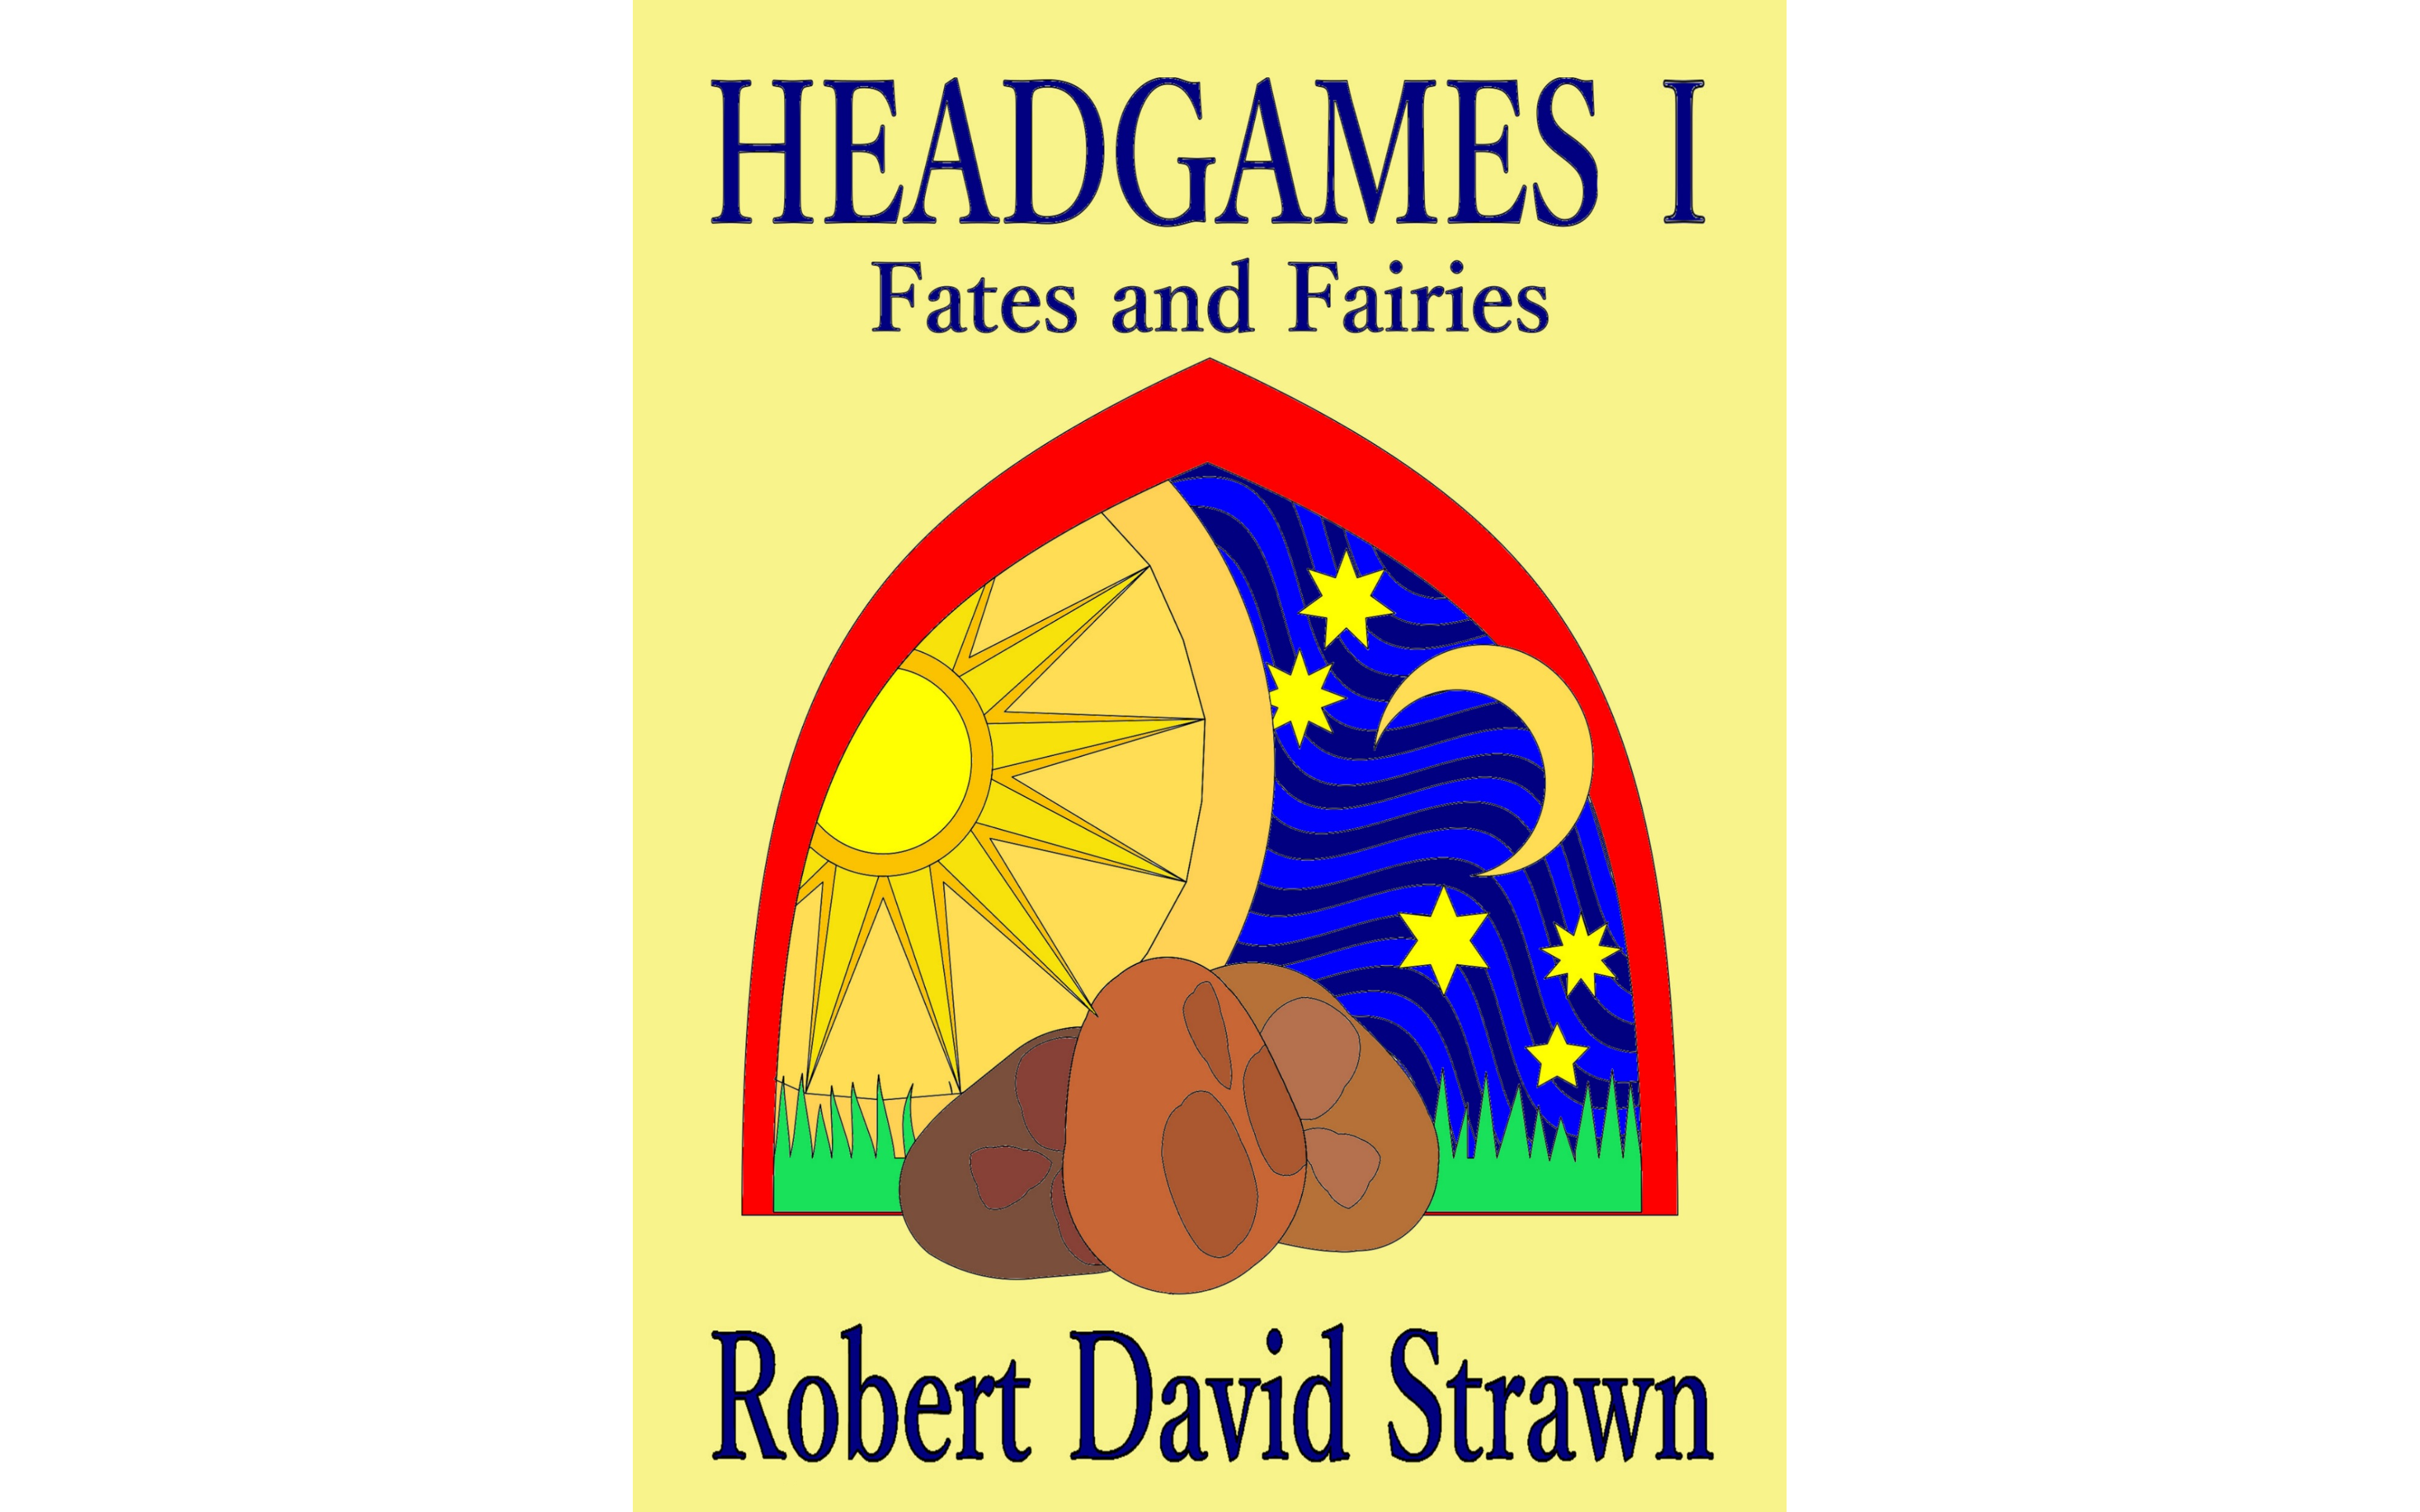 Headgames I: Fates and Fairies